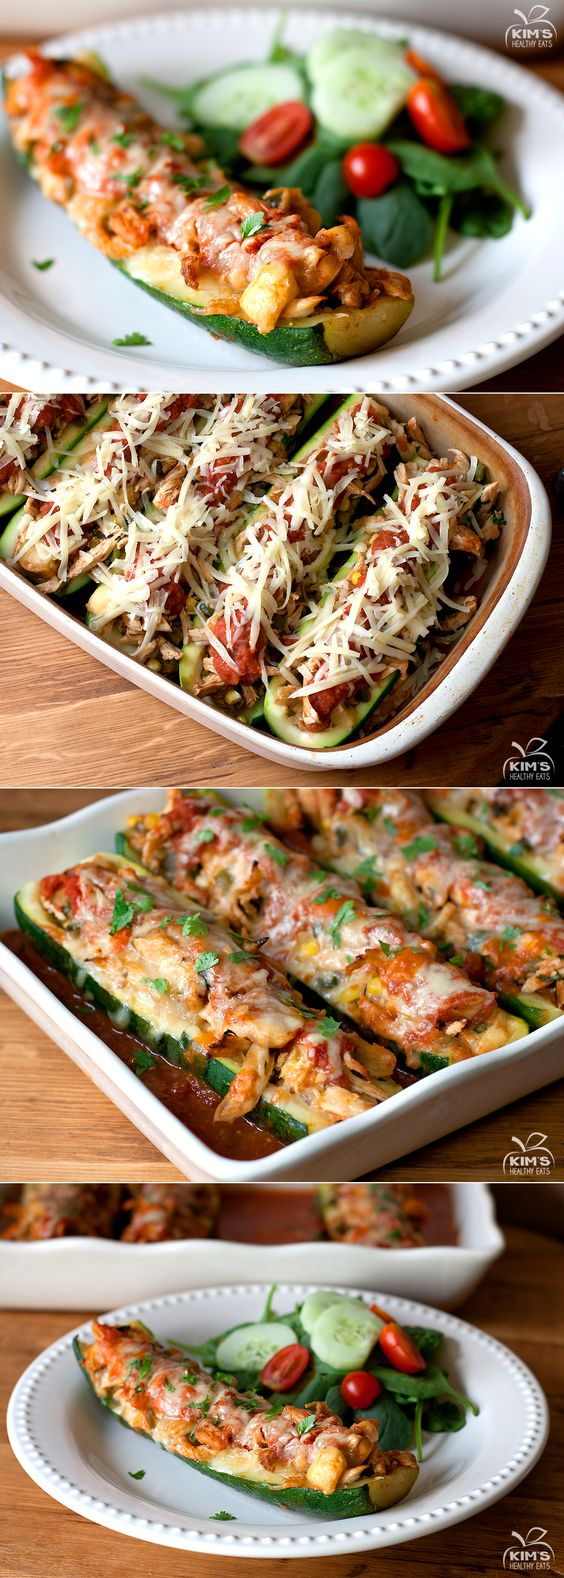 Chicken Enchilada Zucchini Boats | Chicken Enchiladas, Enchiladas and ...